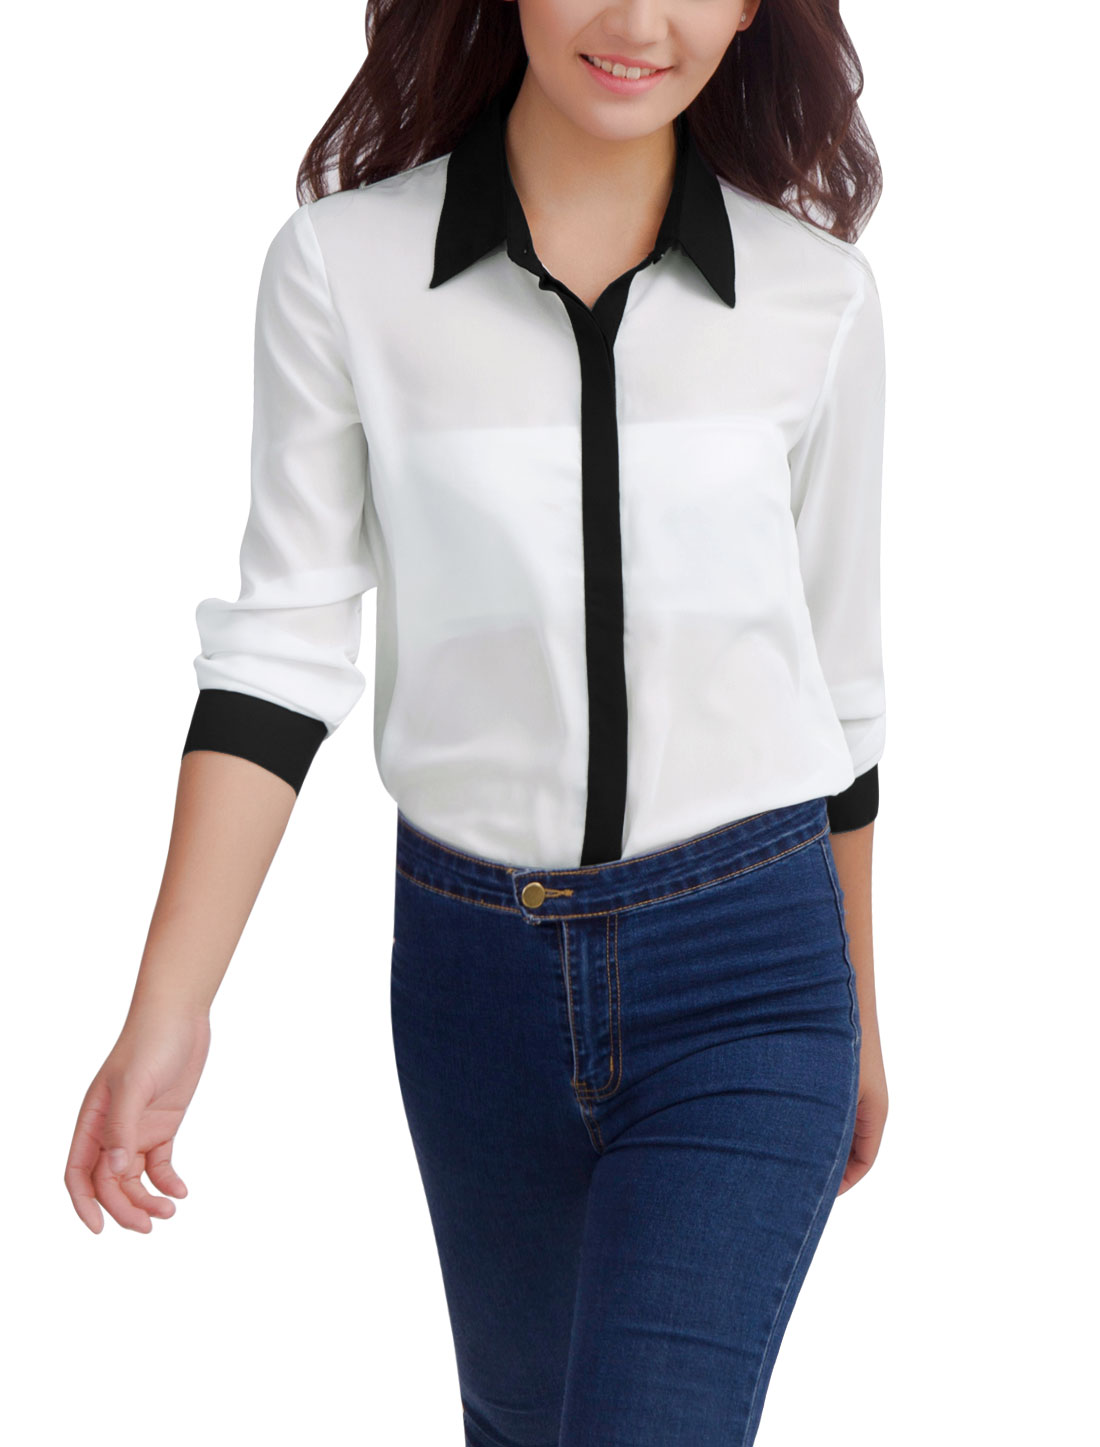 Women Chic Contrast Color Design Hidden Button Front White Blouse L